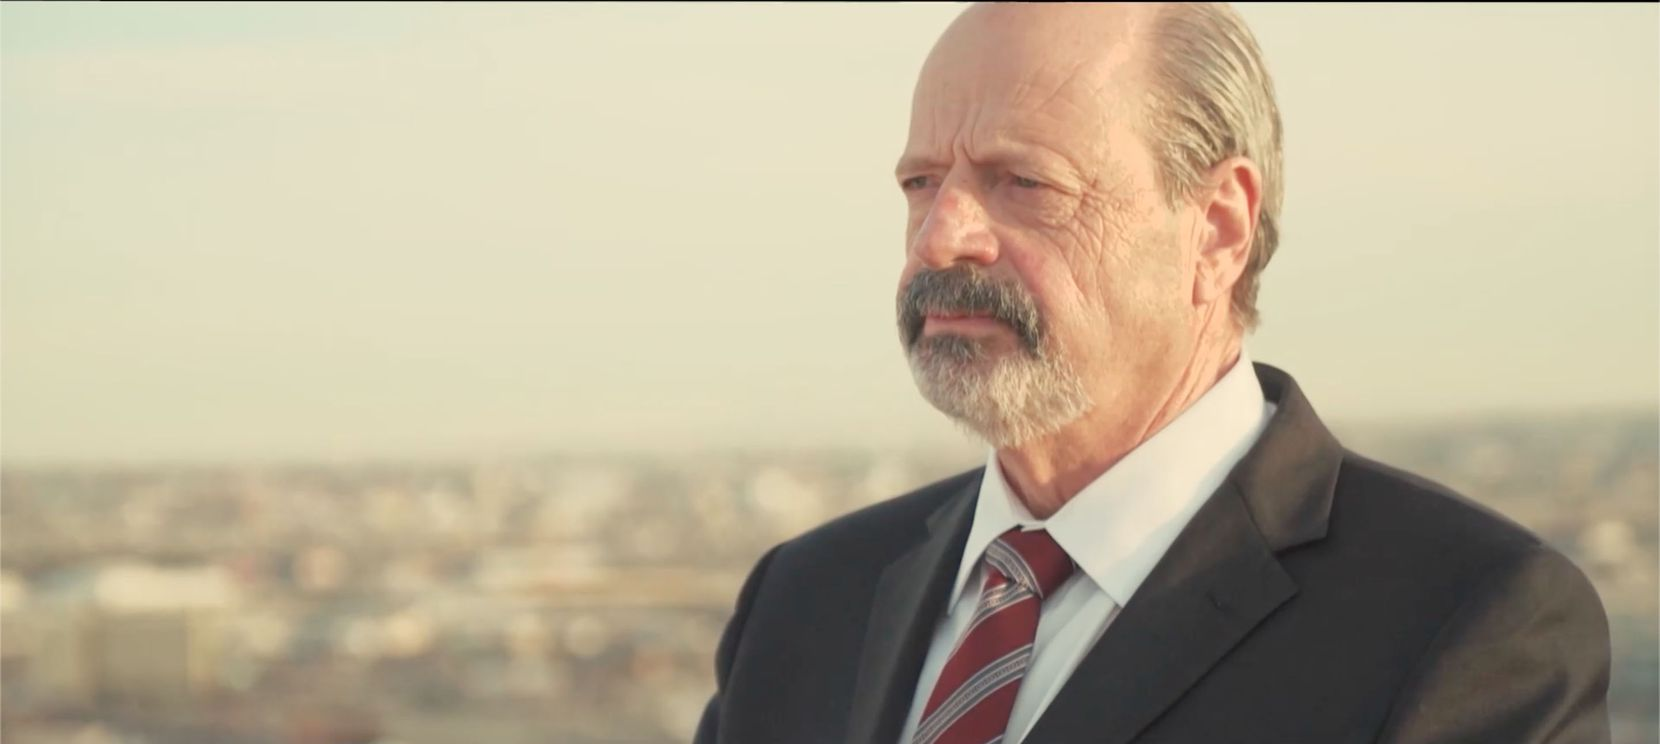 El Paso Mayor Oscar Leeser is shown in a video released by the Texas Democratic Party in response to Gov. Greg Abbott's State of the State address. El Paso Mayor Oscar Leeser, was recently elected as mayor of El Paso in November 2020, having previously served from 2013-2017. In 2020, Mayor Leeser lost both his mother and brother to COVID-19.